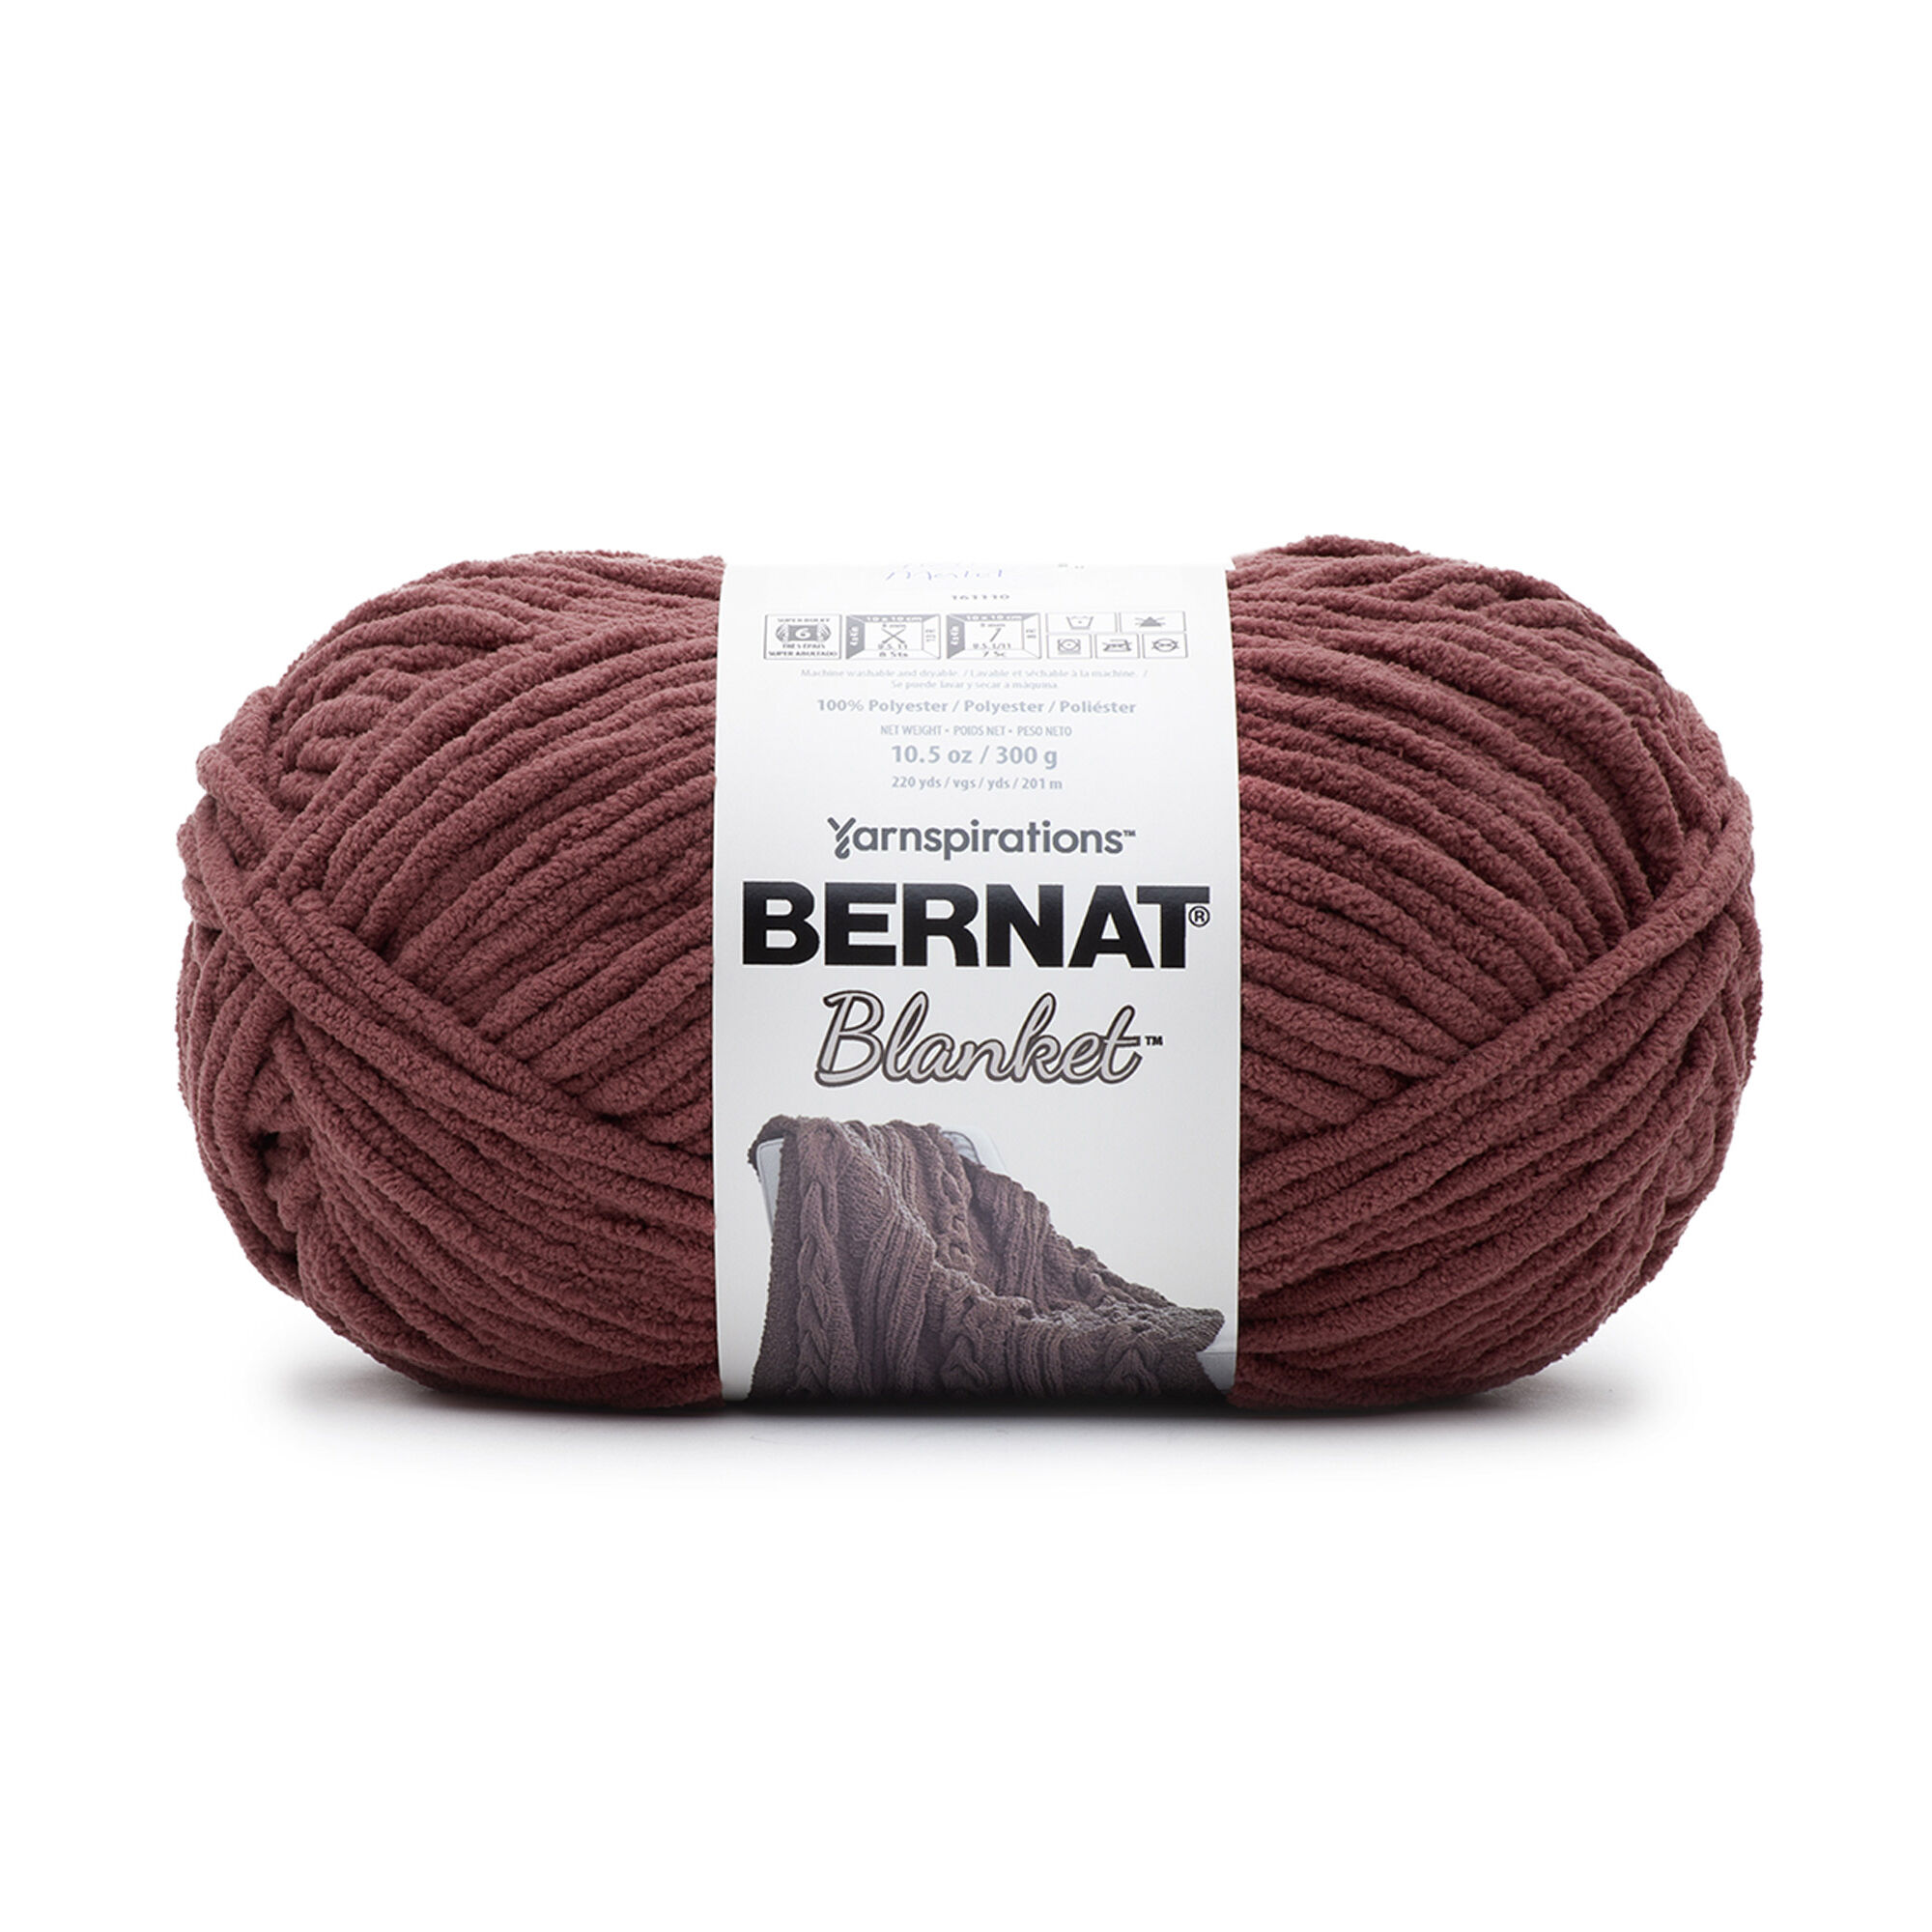 Bernat Blanket Yarn 10.5 oz in Tan Pink